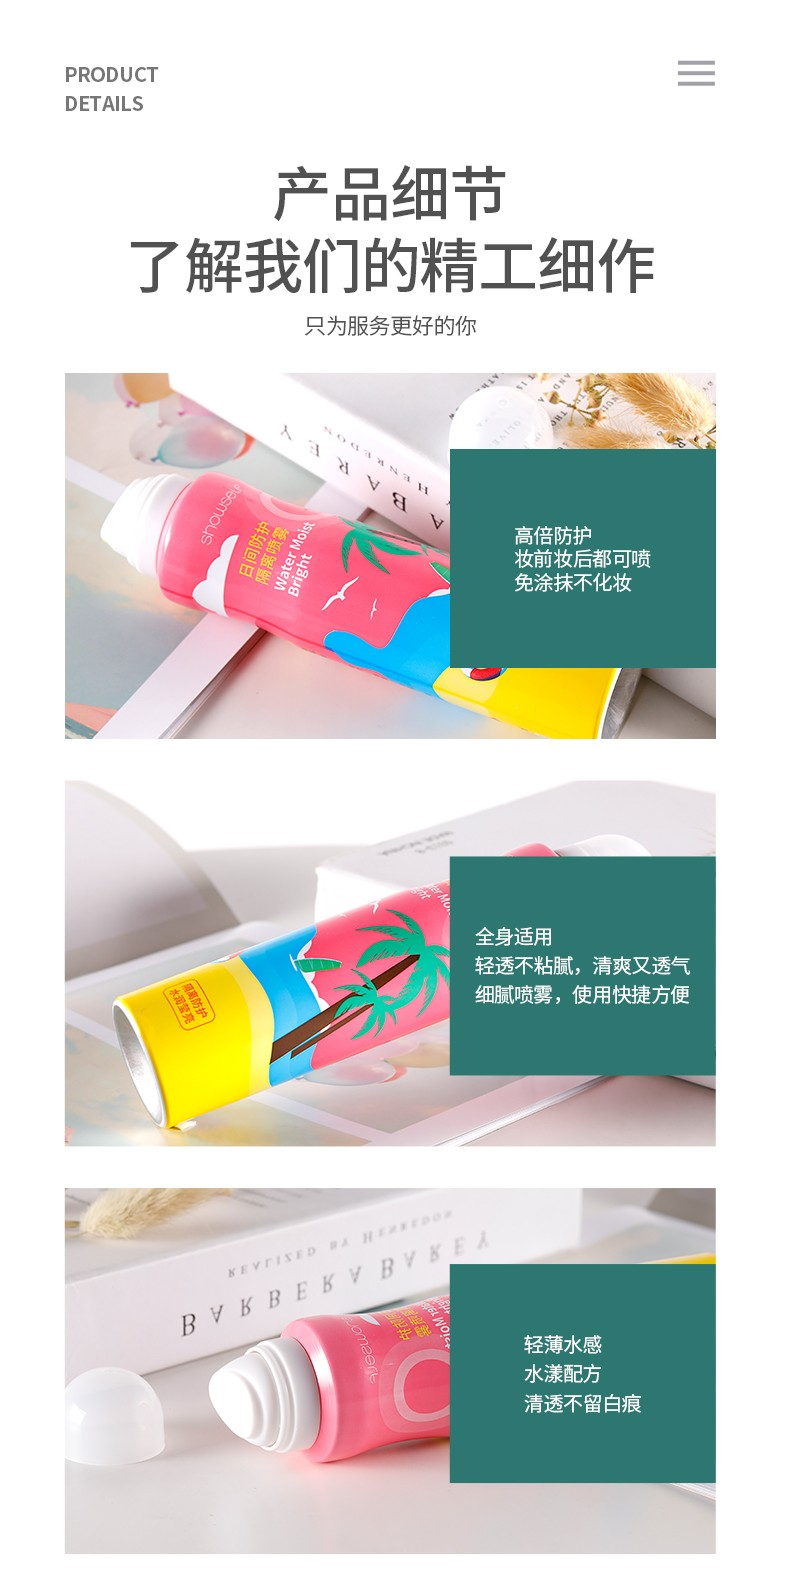 LQ day protection isolation spray 1139 501466 MIEVIC/米薇可